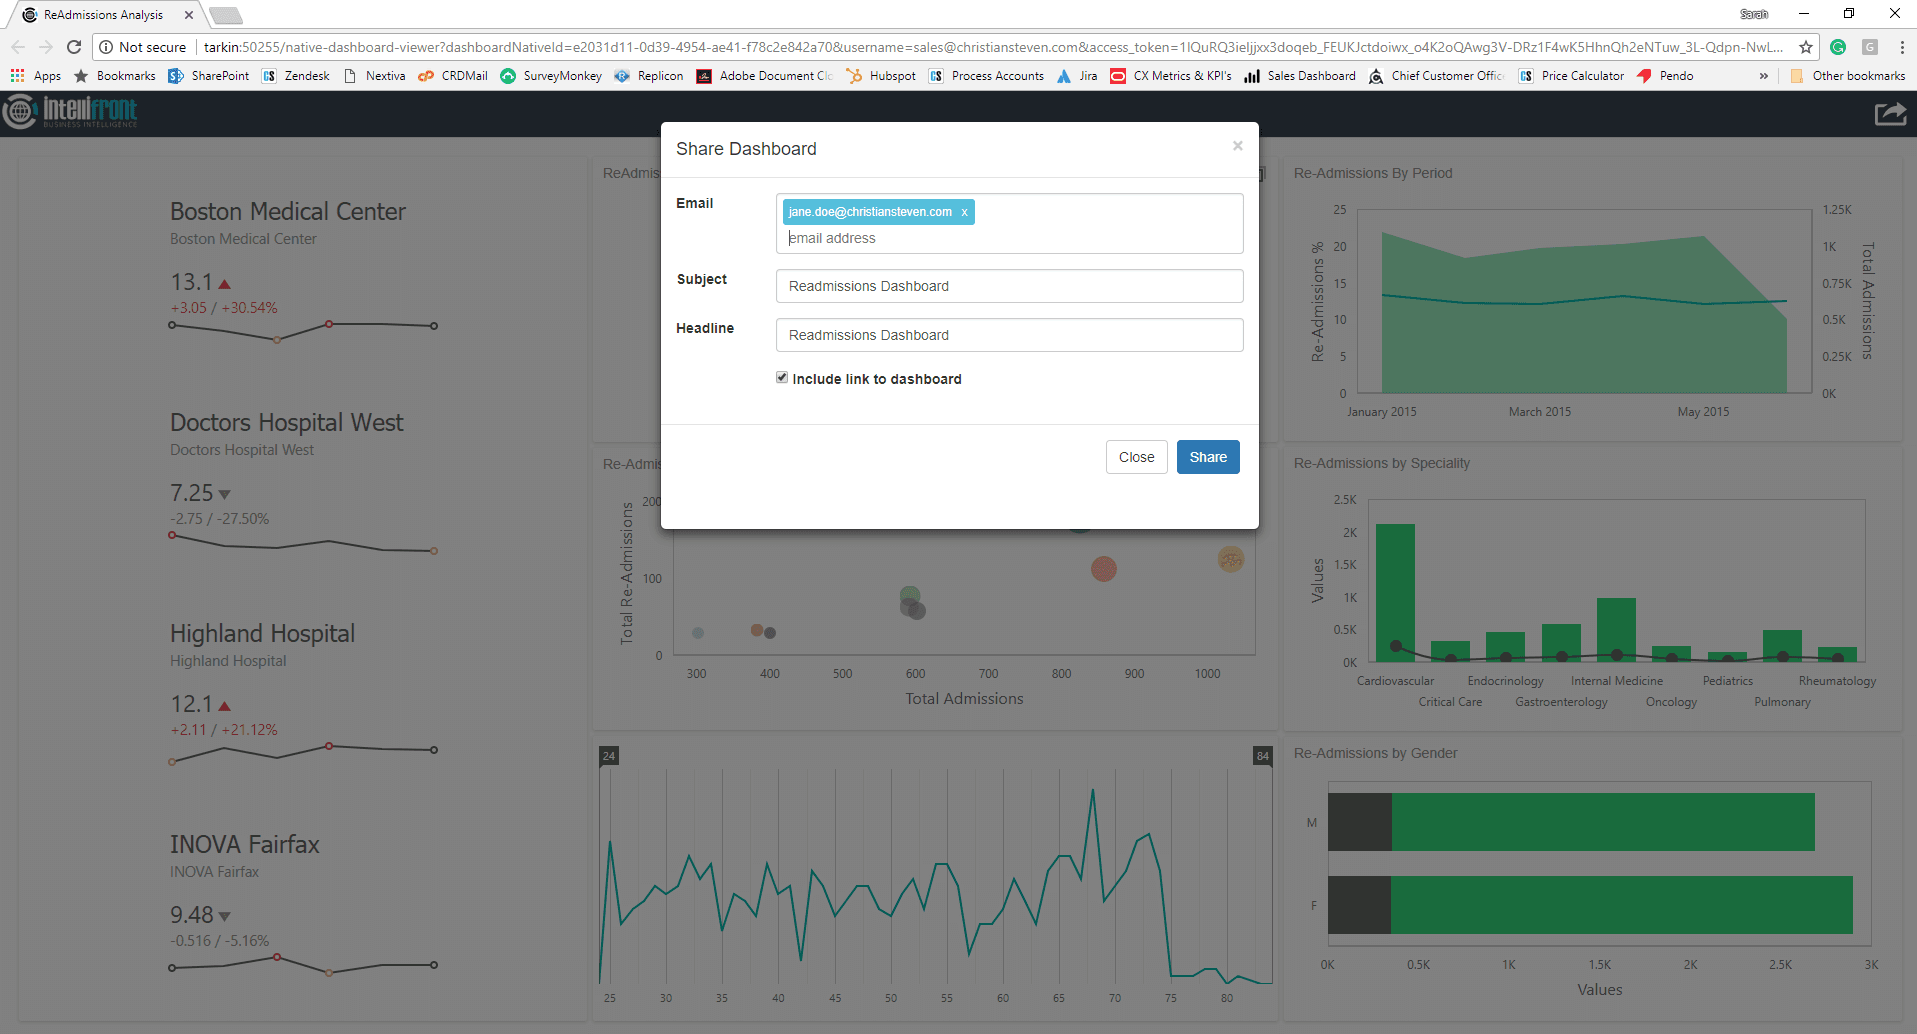 How to share a dashboard